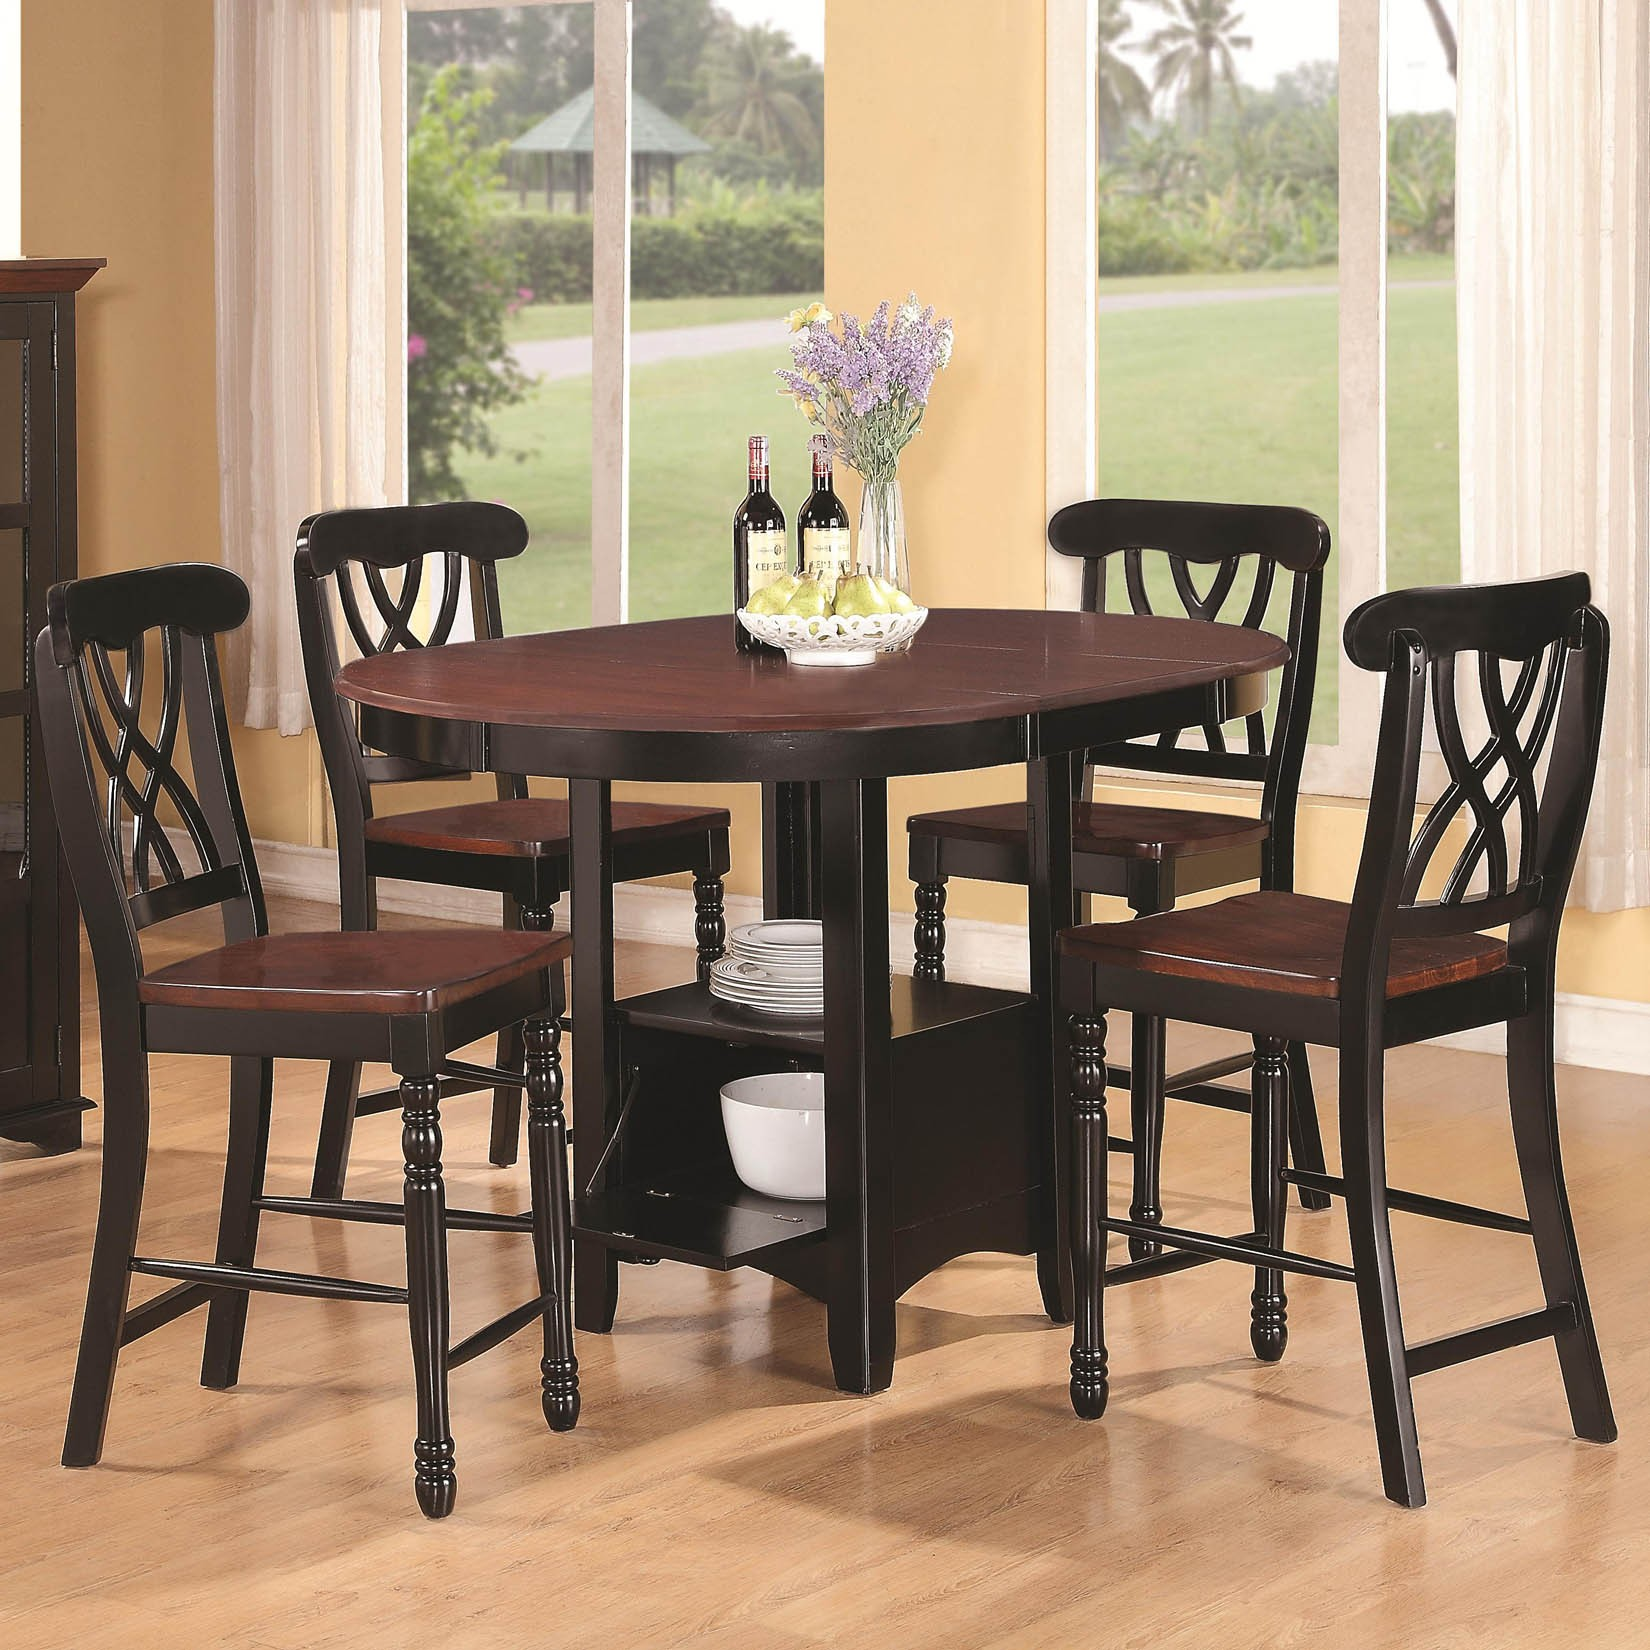 Dining Room Tables: Adorable Round Dining Room Table Sets For 4